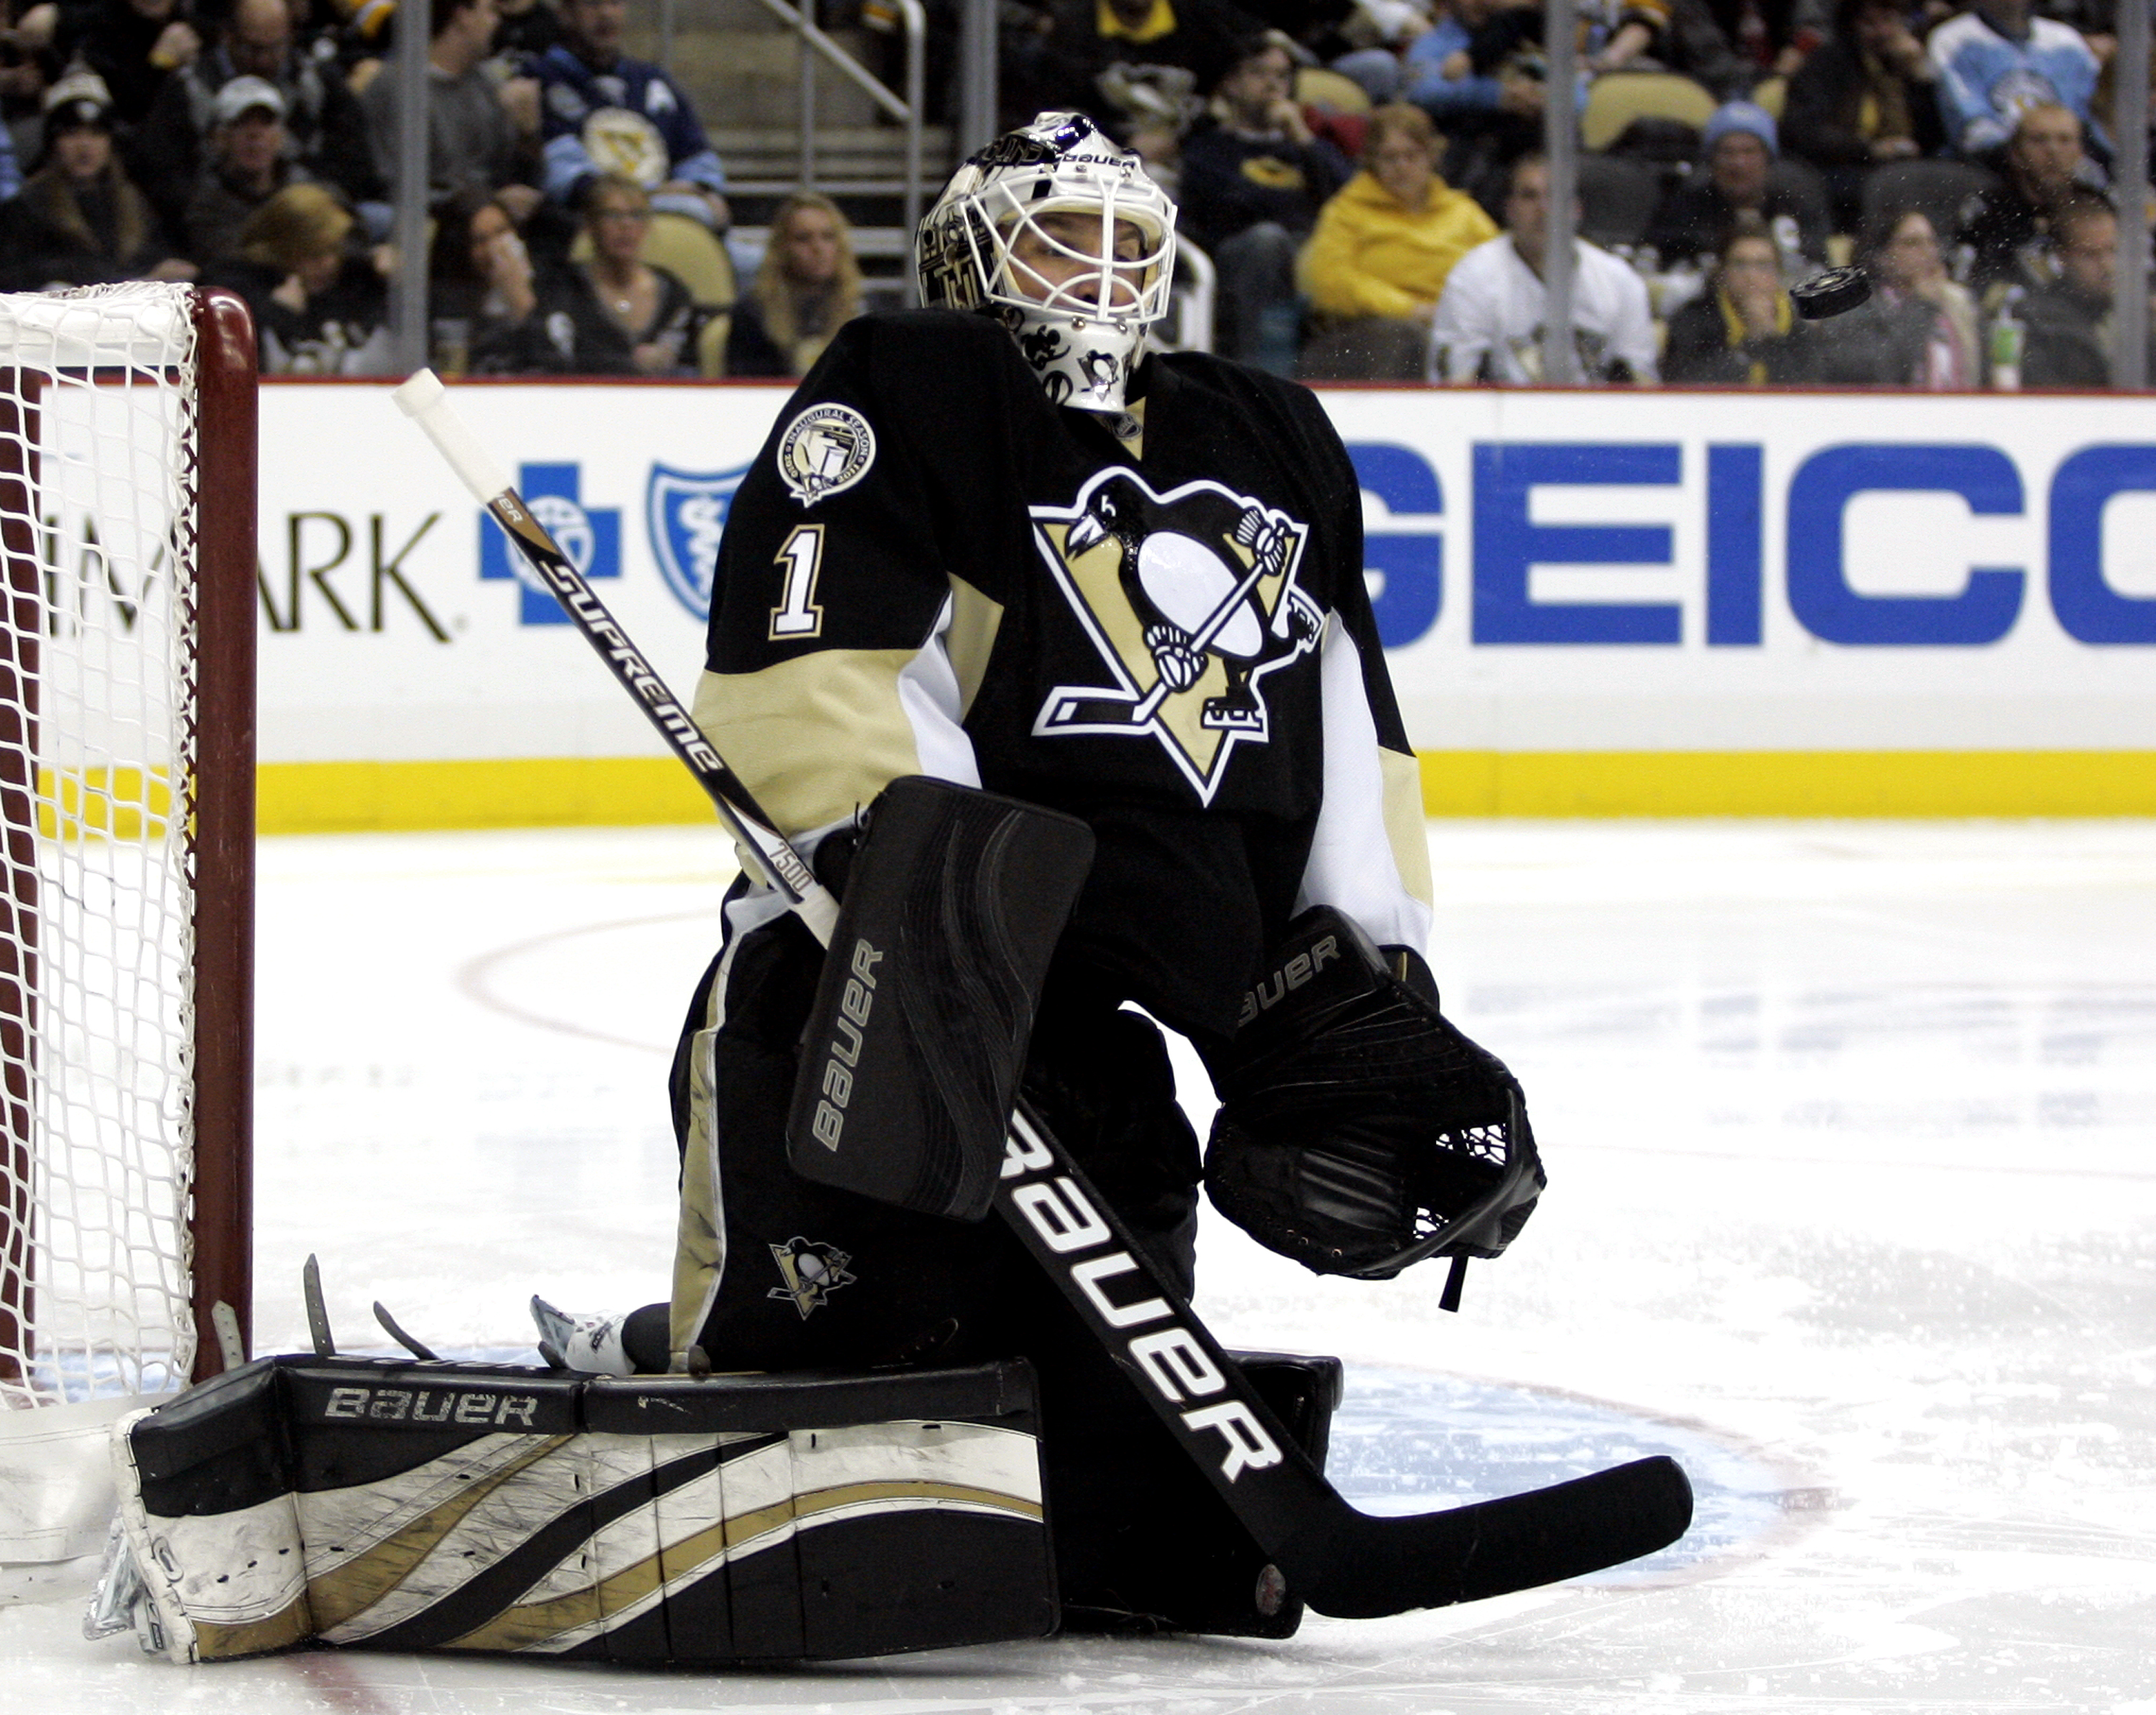 PITTSBURGH, PA - FEBRUARY 02:  Brent Johnson #1 of the Pittsburgh Penguins makes a save against the New York Islanders at Consol Energy Center on February 2, 2011 in Pittsburgh, Pennsylvania.  The Penguins shut out the Islanders 3-0.  (Photo by Justin K.